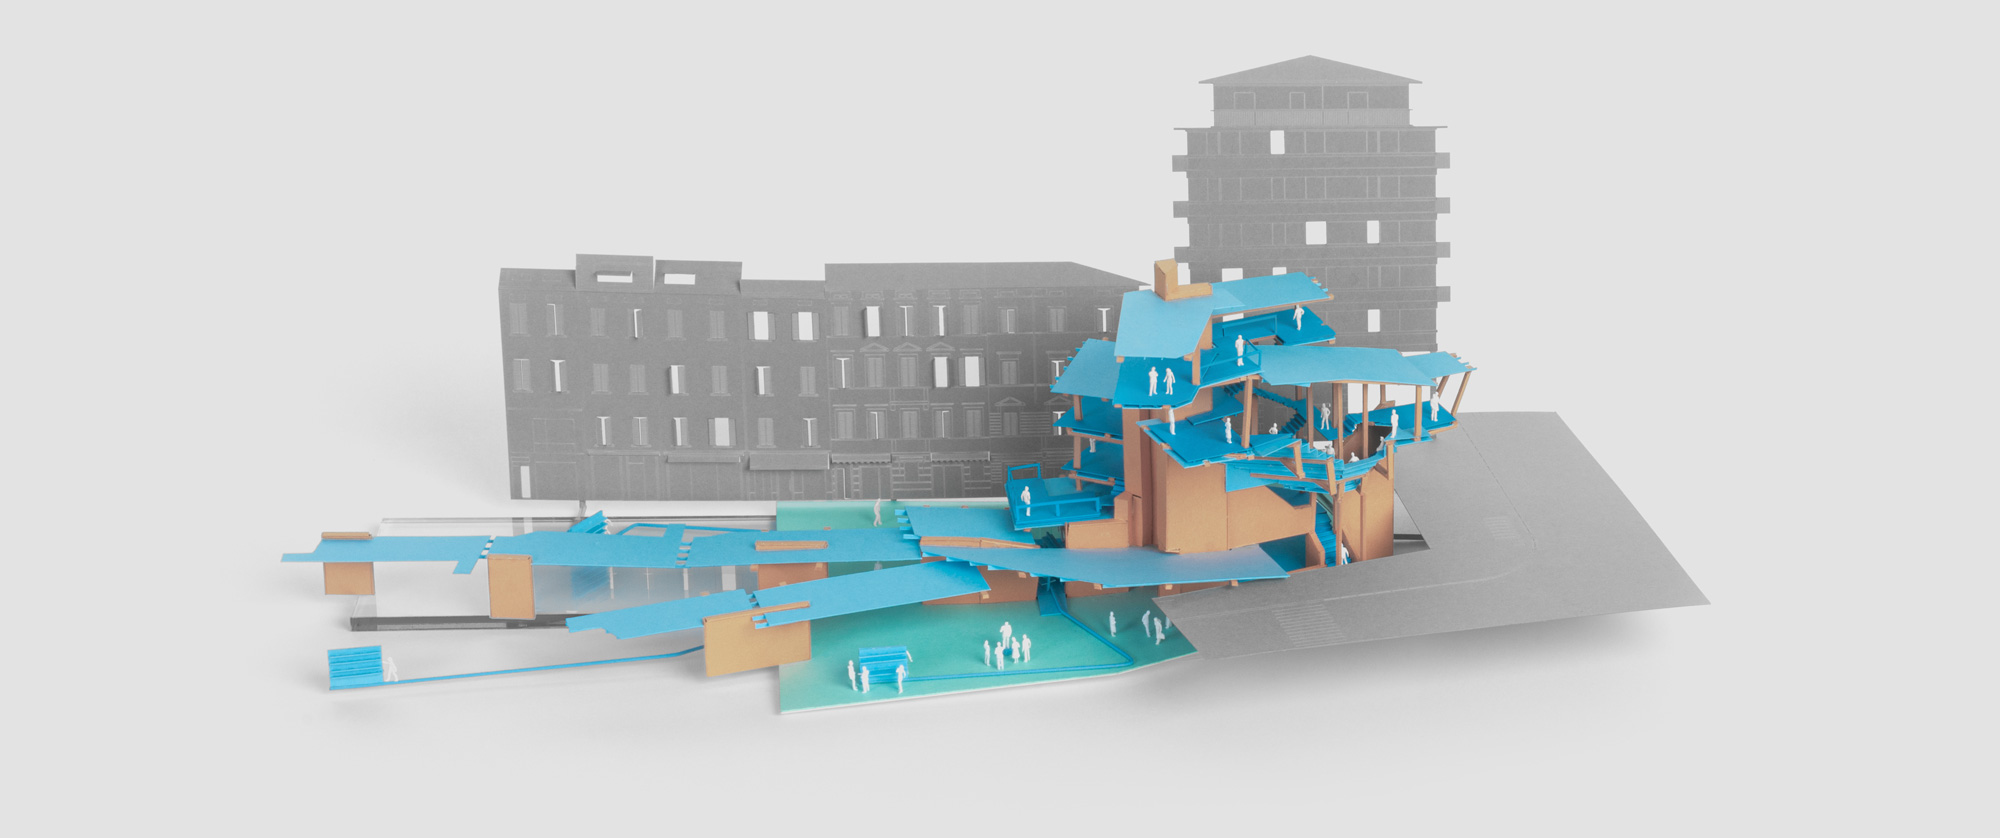 Architecture model made from card